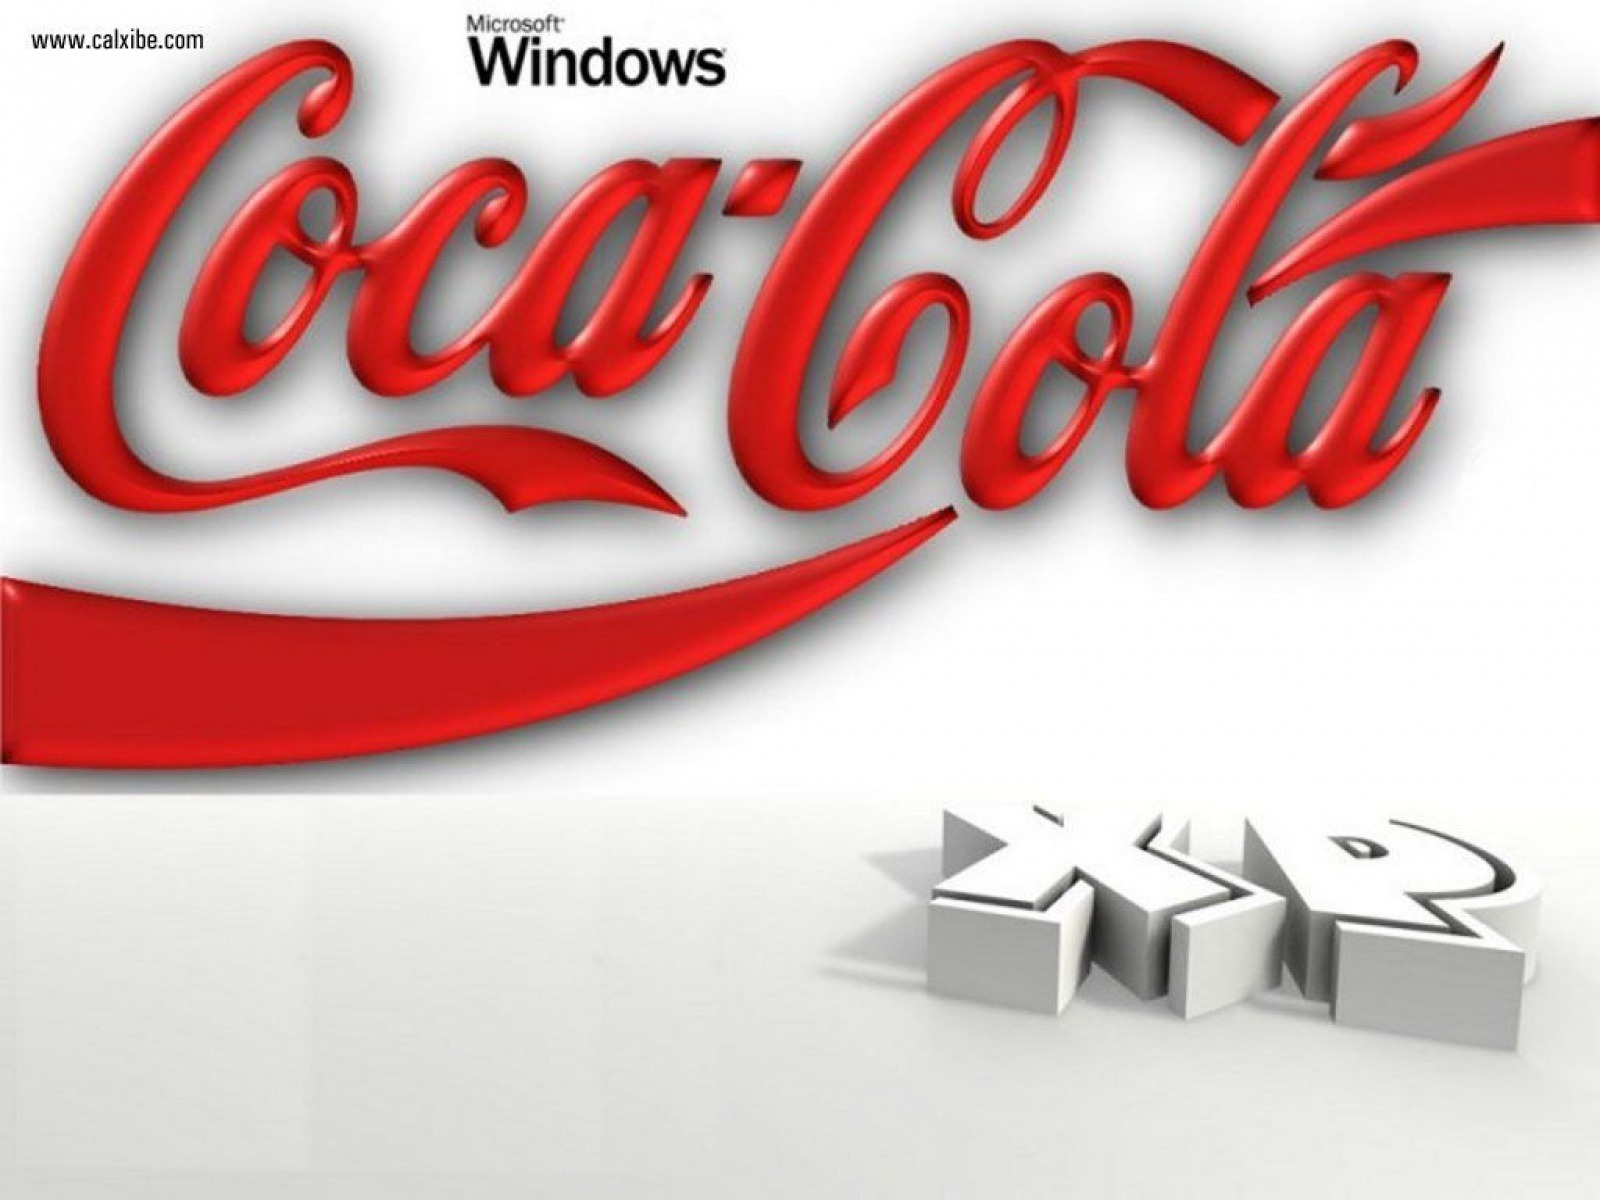 Coca Cola Windows XP